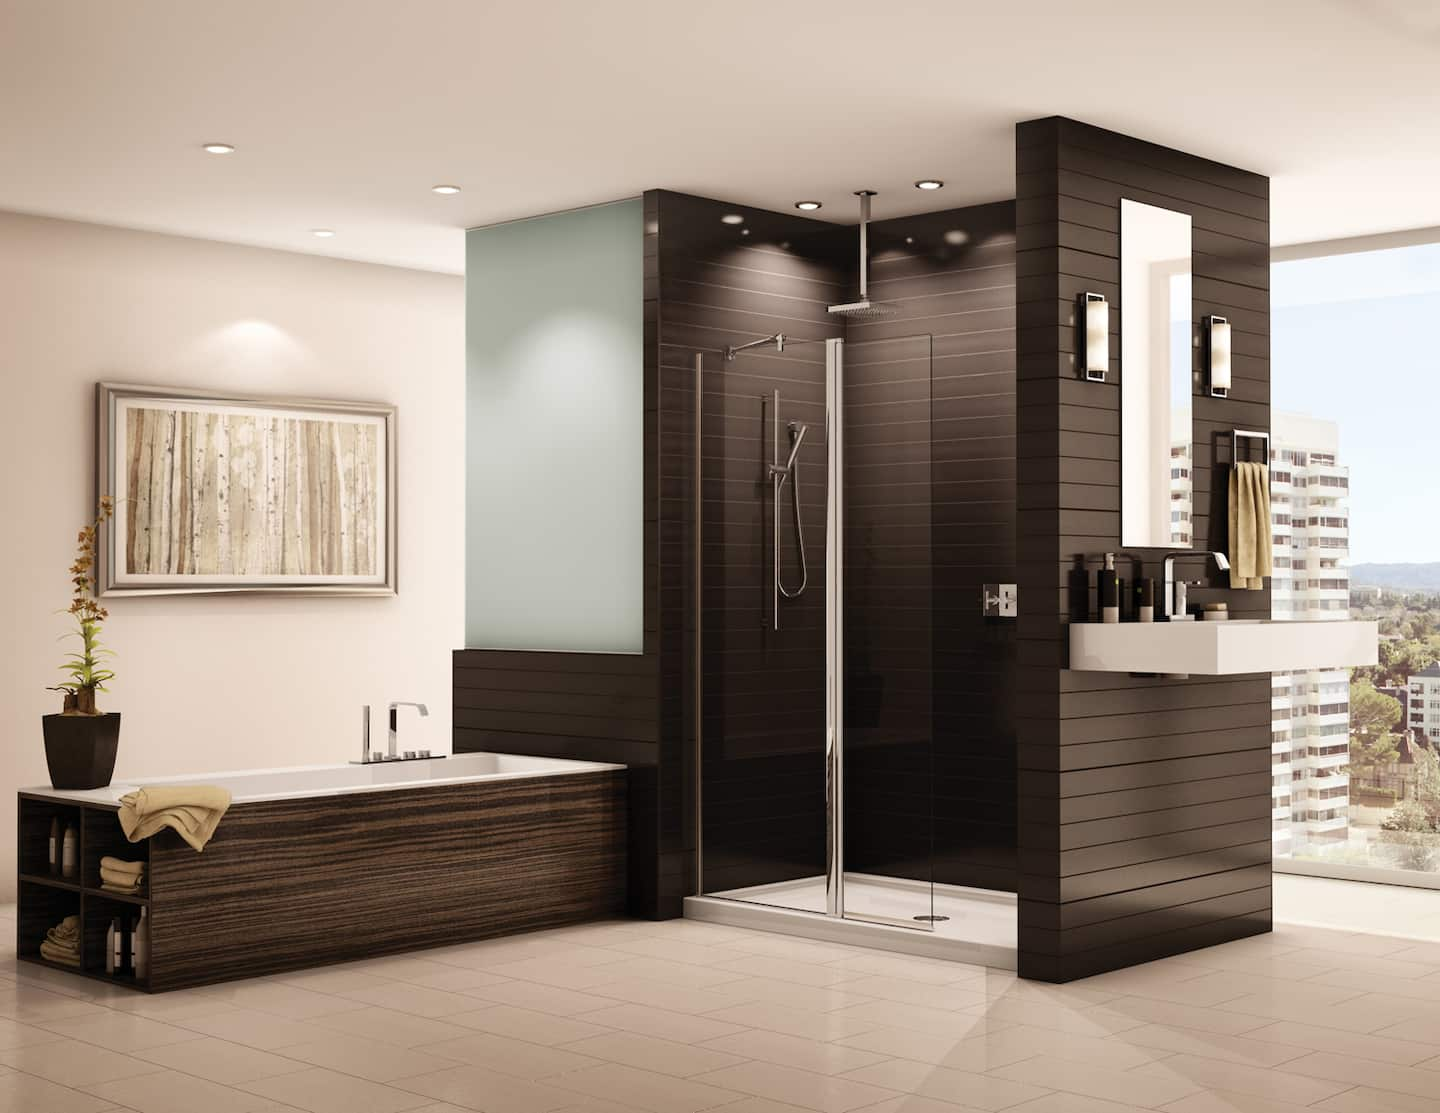 Walk In Tub With Heated Seat. bathroom with walk in shower and separate tub Pros Cons of Walk Tubs  Angie s List